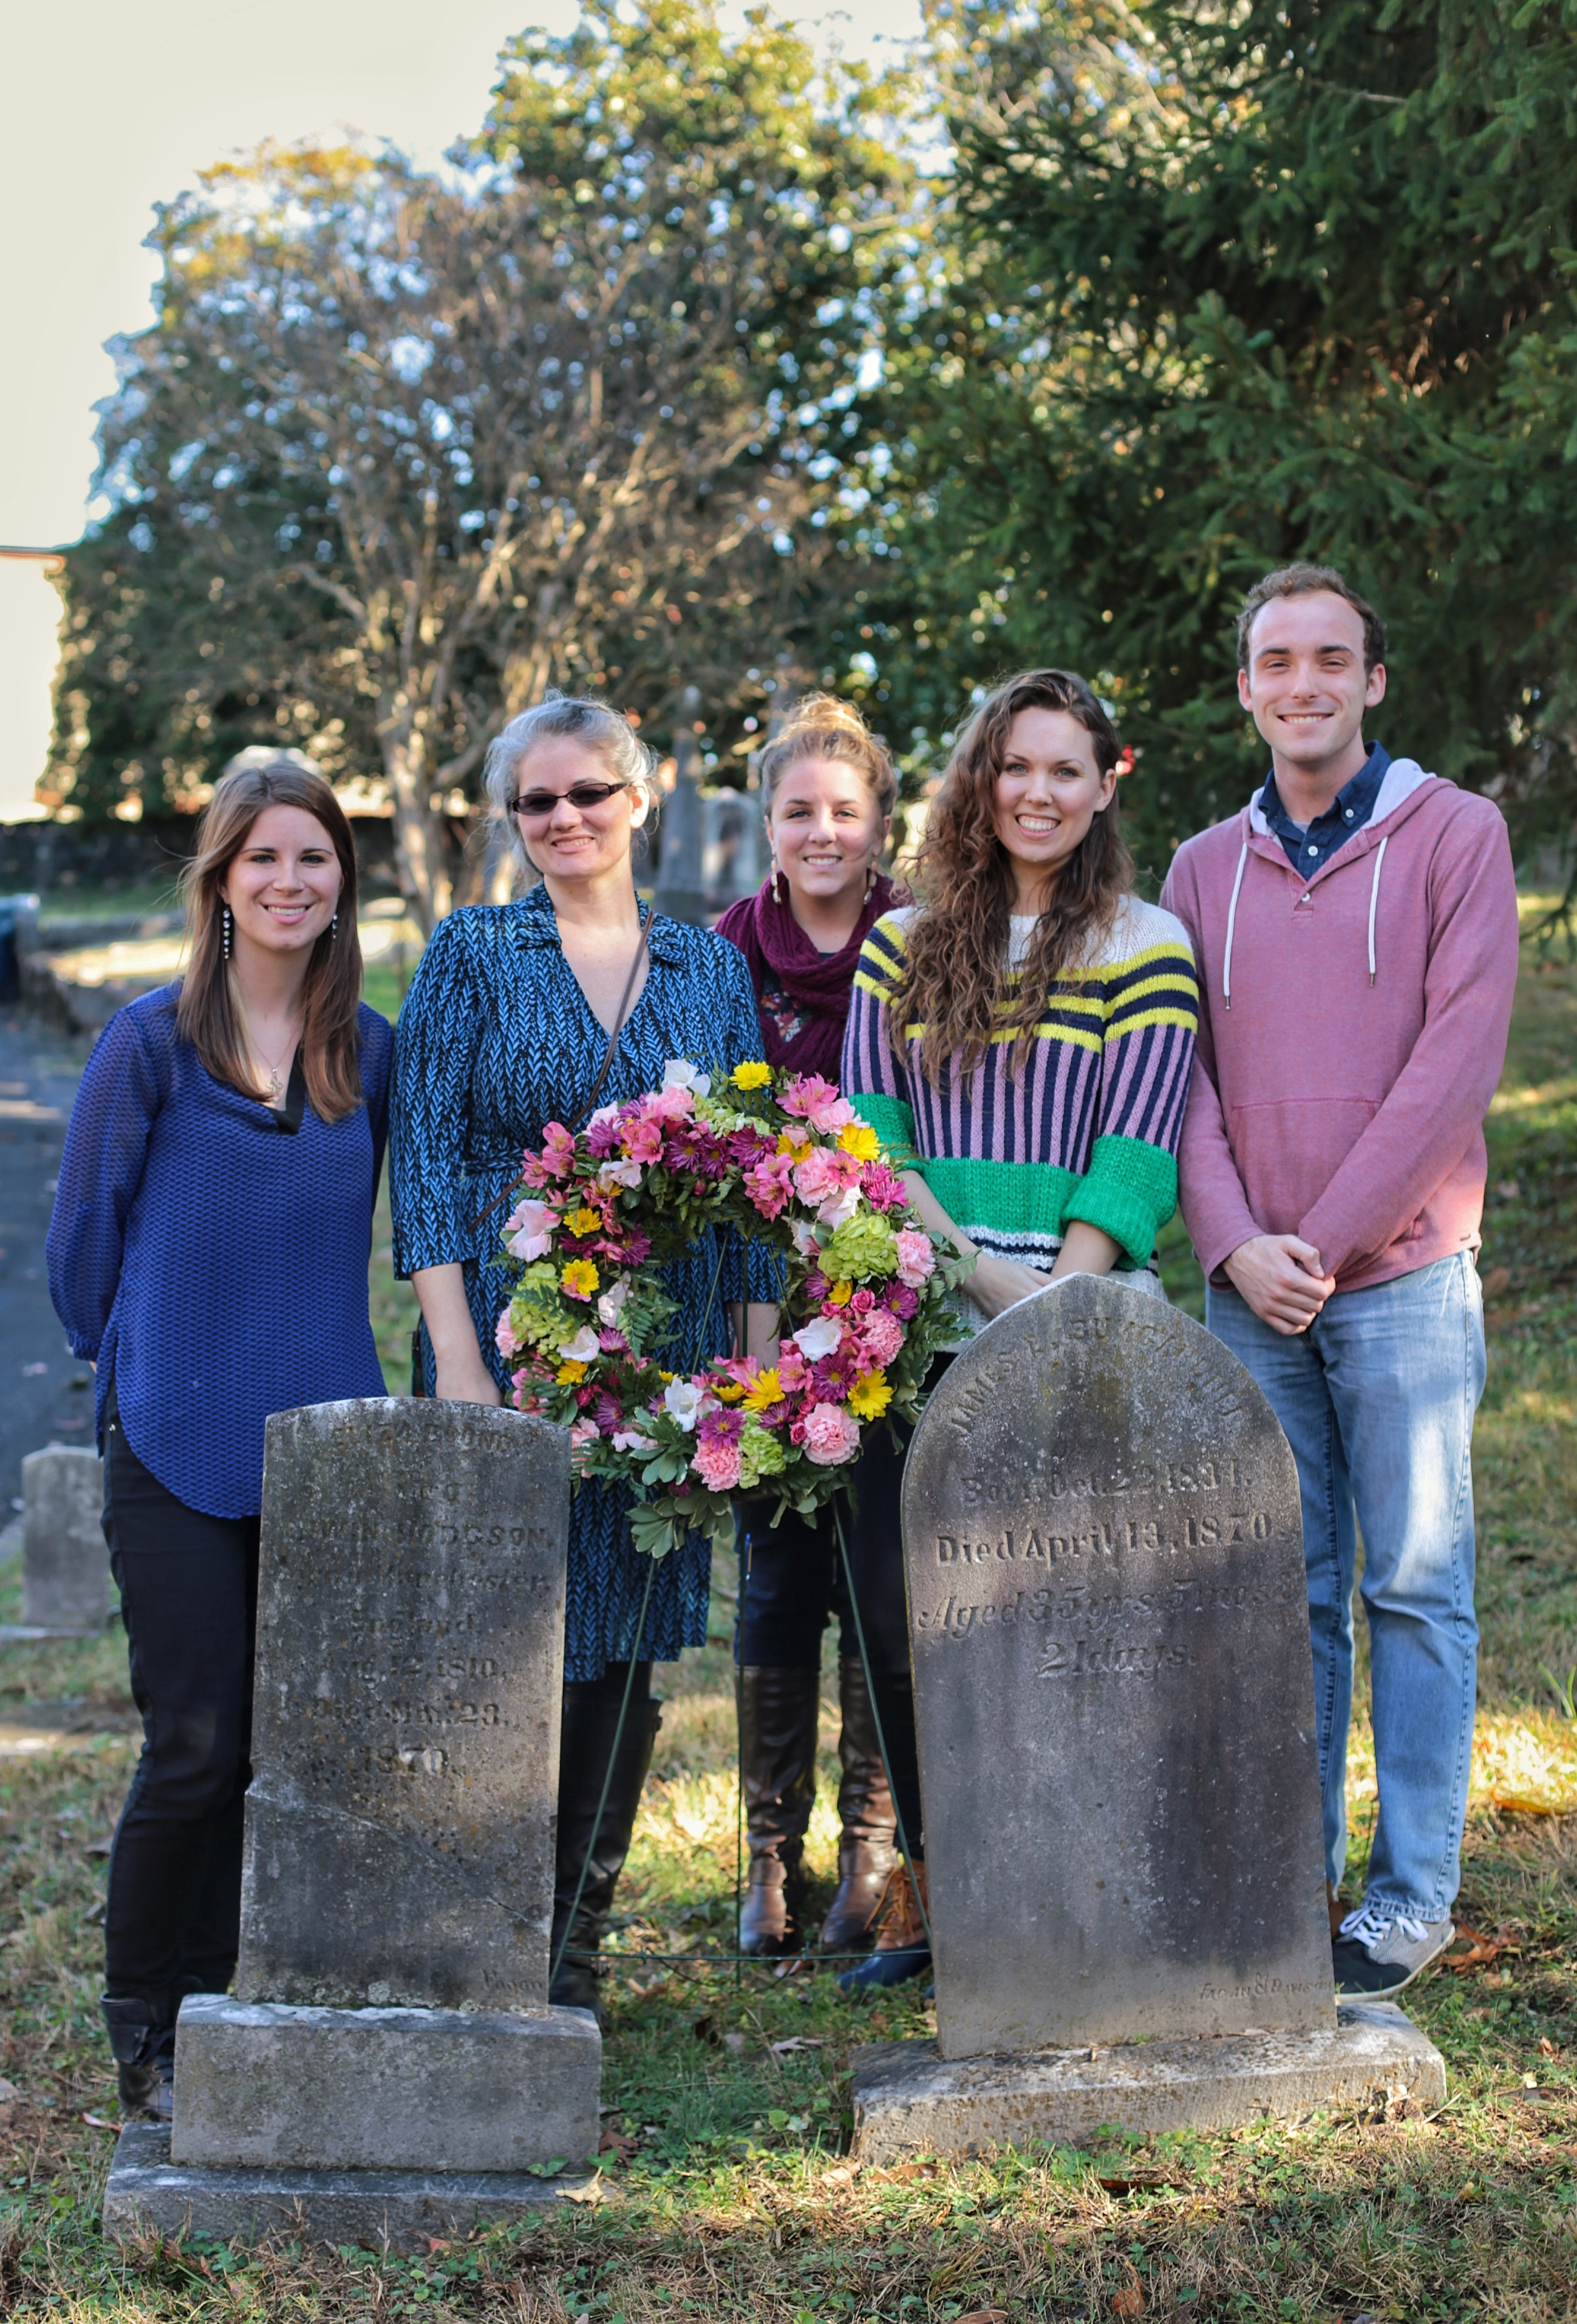 Five Lee University students at Eliza Boond Hodgson's grave,on the left. The wreath was placed there by fans and relatives of Burnett as part of the Frances Hodgson Burnett Sesquicentennial Celebration in November 2015.